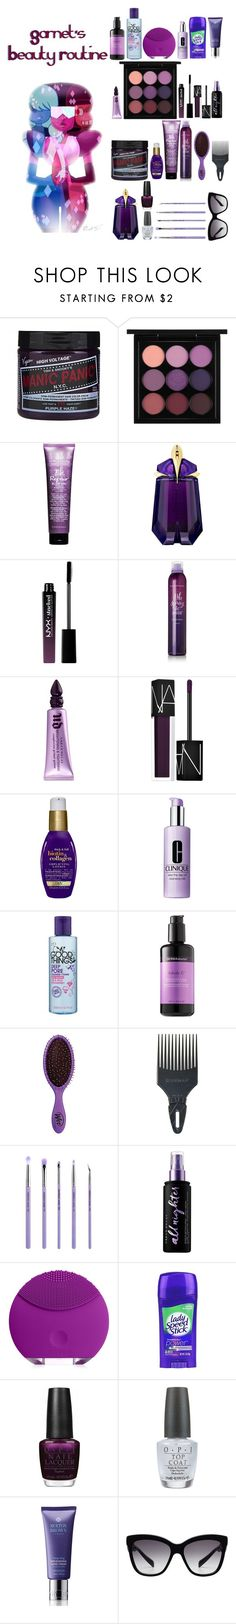 """""""Garnet's Beauty Routine"""" by sonnet-xo ❤ liked on Polyvore featuring beauty, MAC Cosmetics, Bumble and bumble, Thierry Mugler, NYX, Urban Decay, NARS Cosmetics, Organix, Clinique and Dermadoctor"""